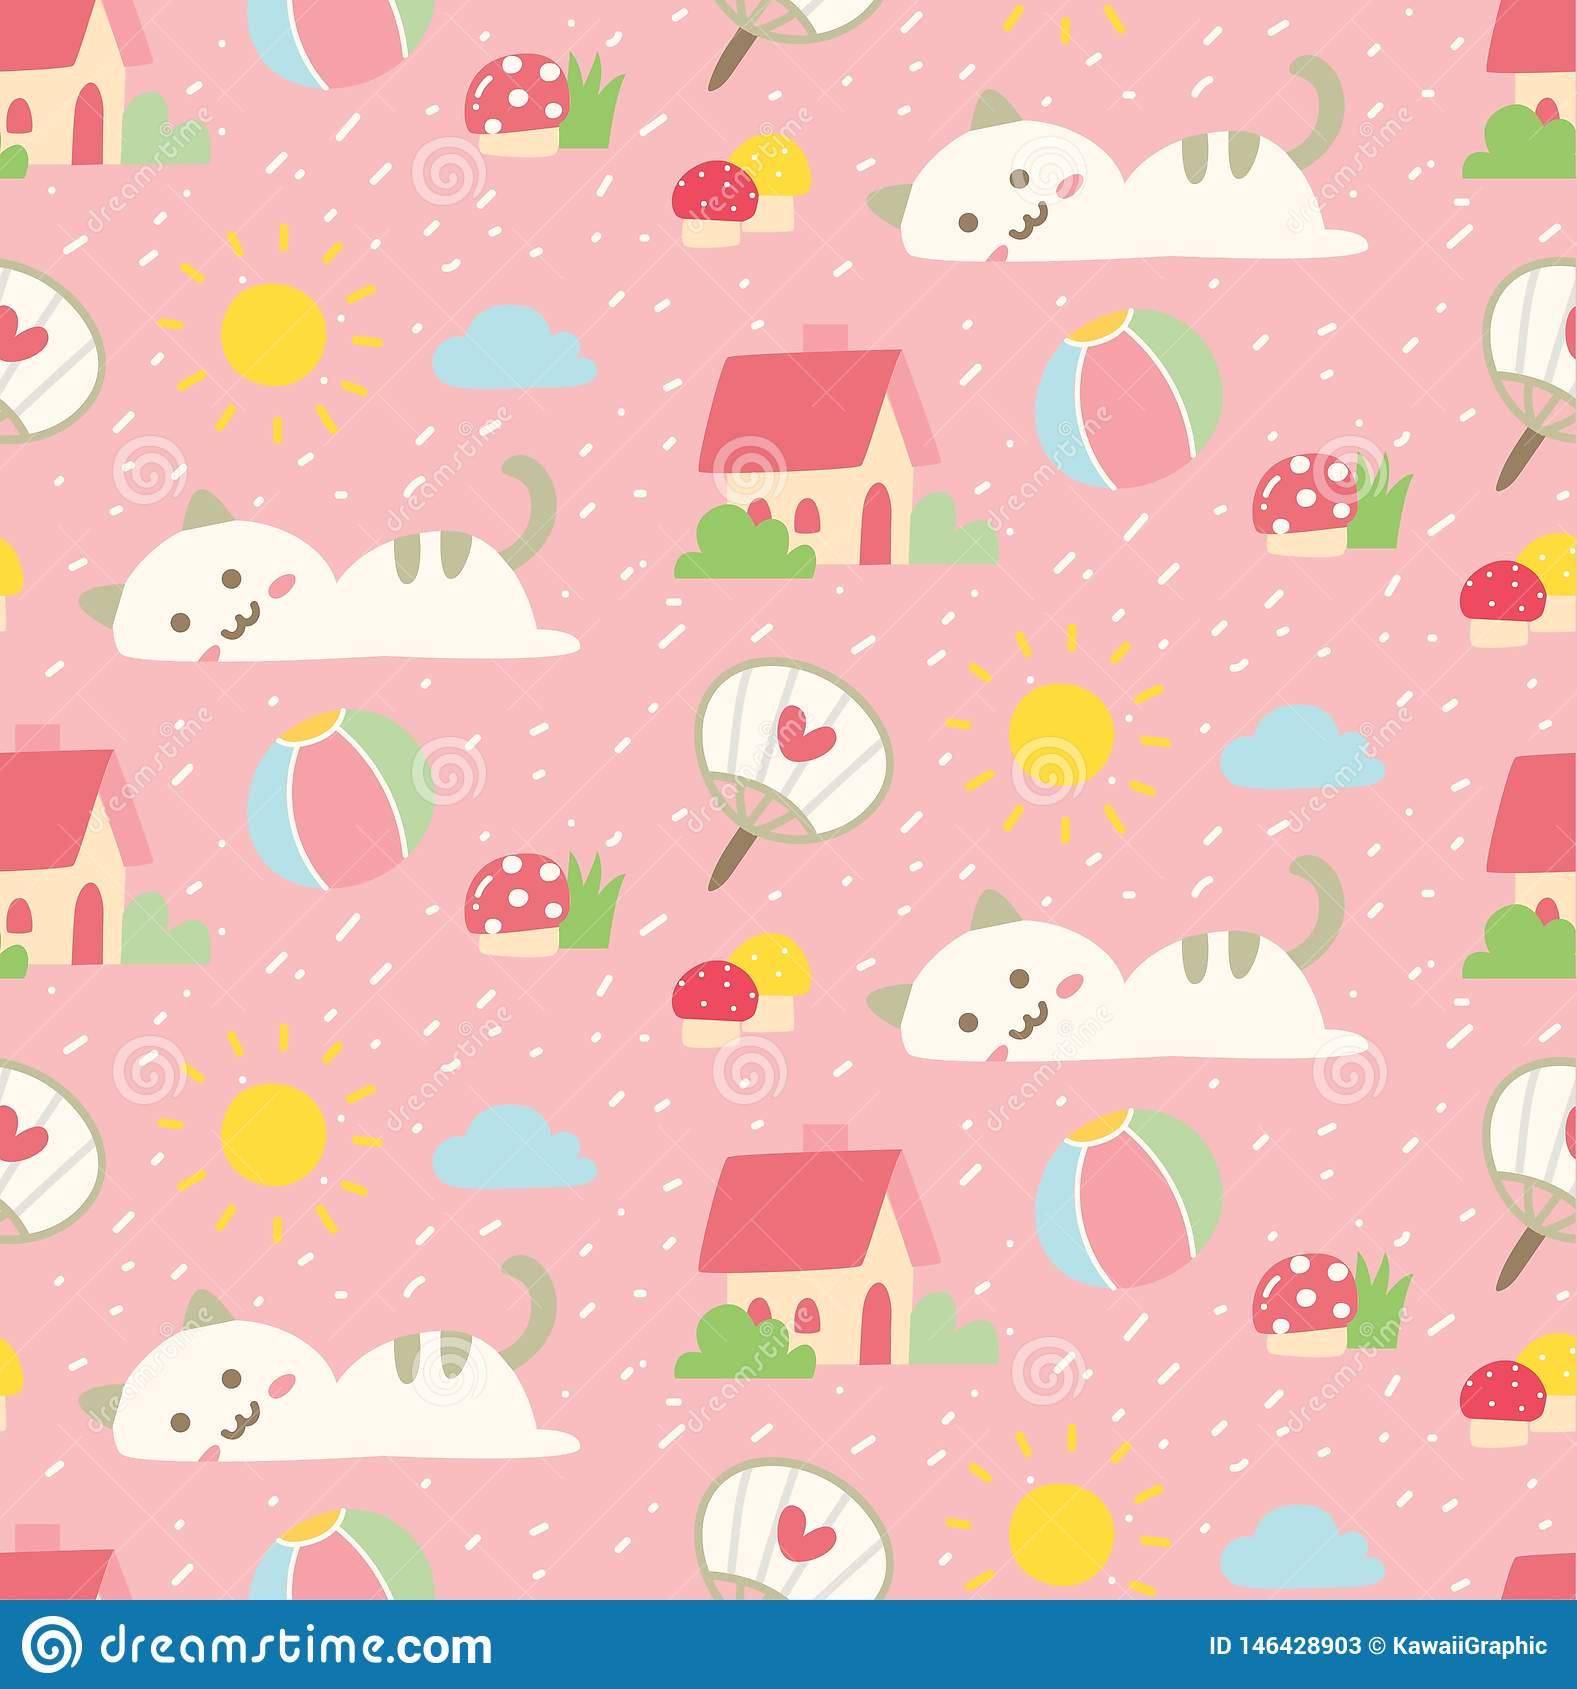 Cute cat seamless background in kawaii style vector